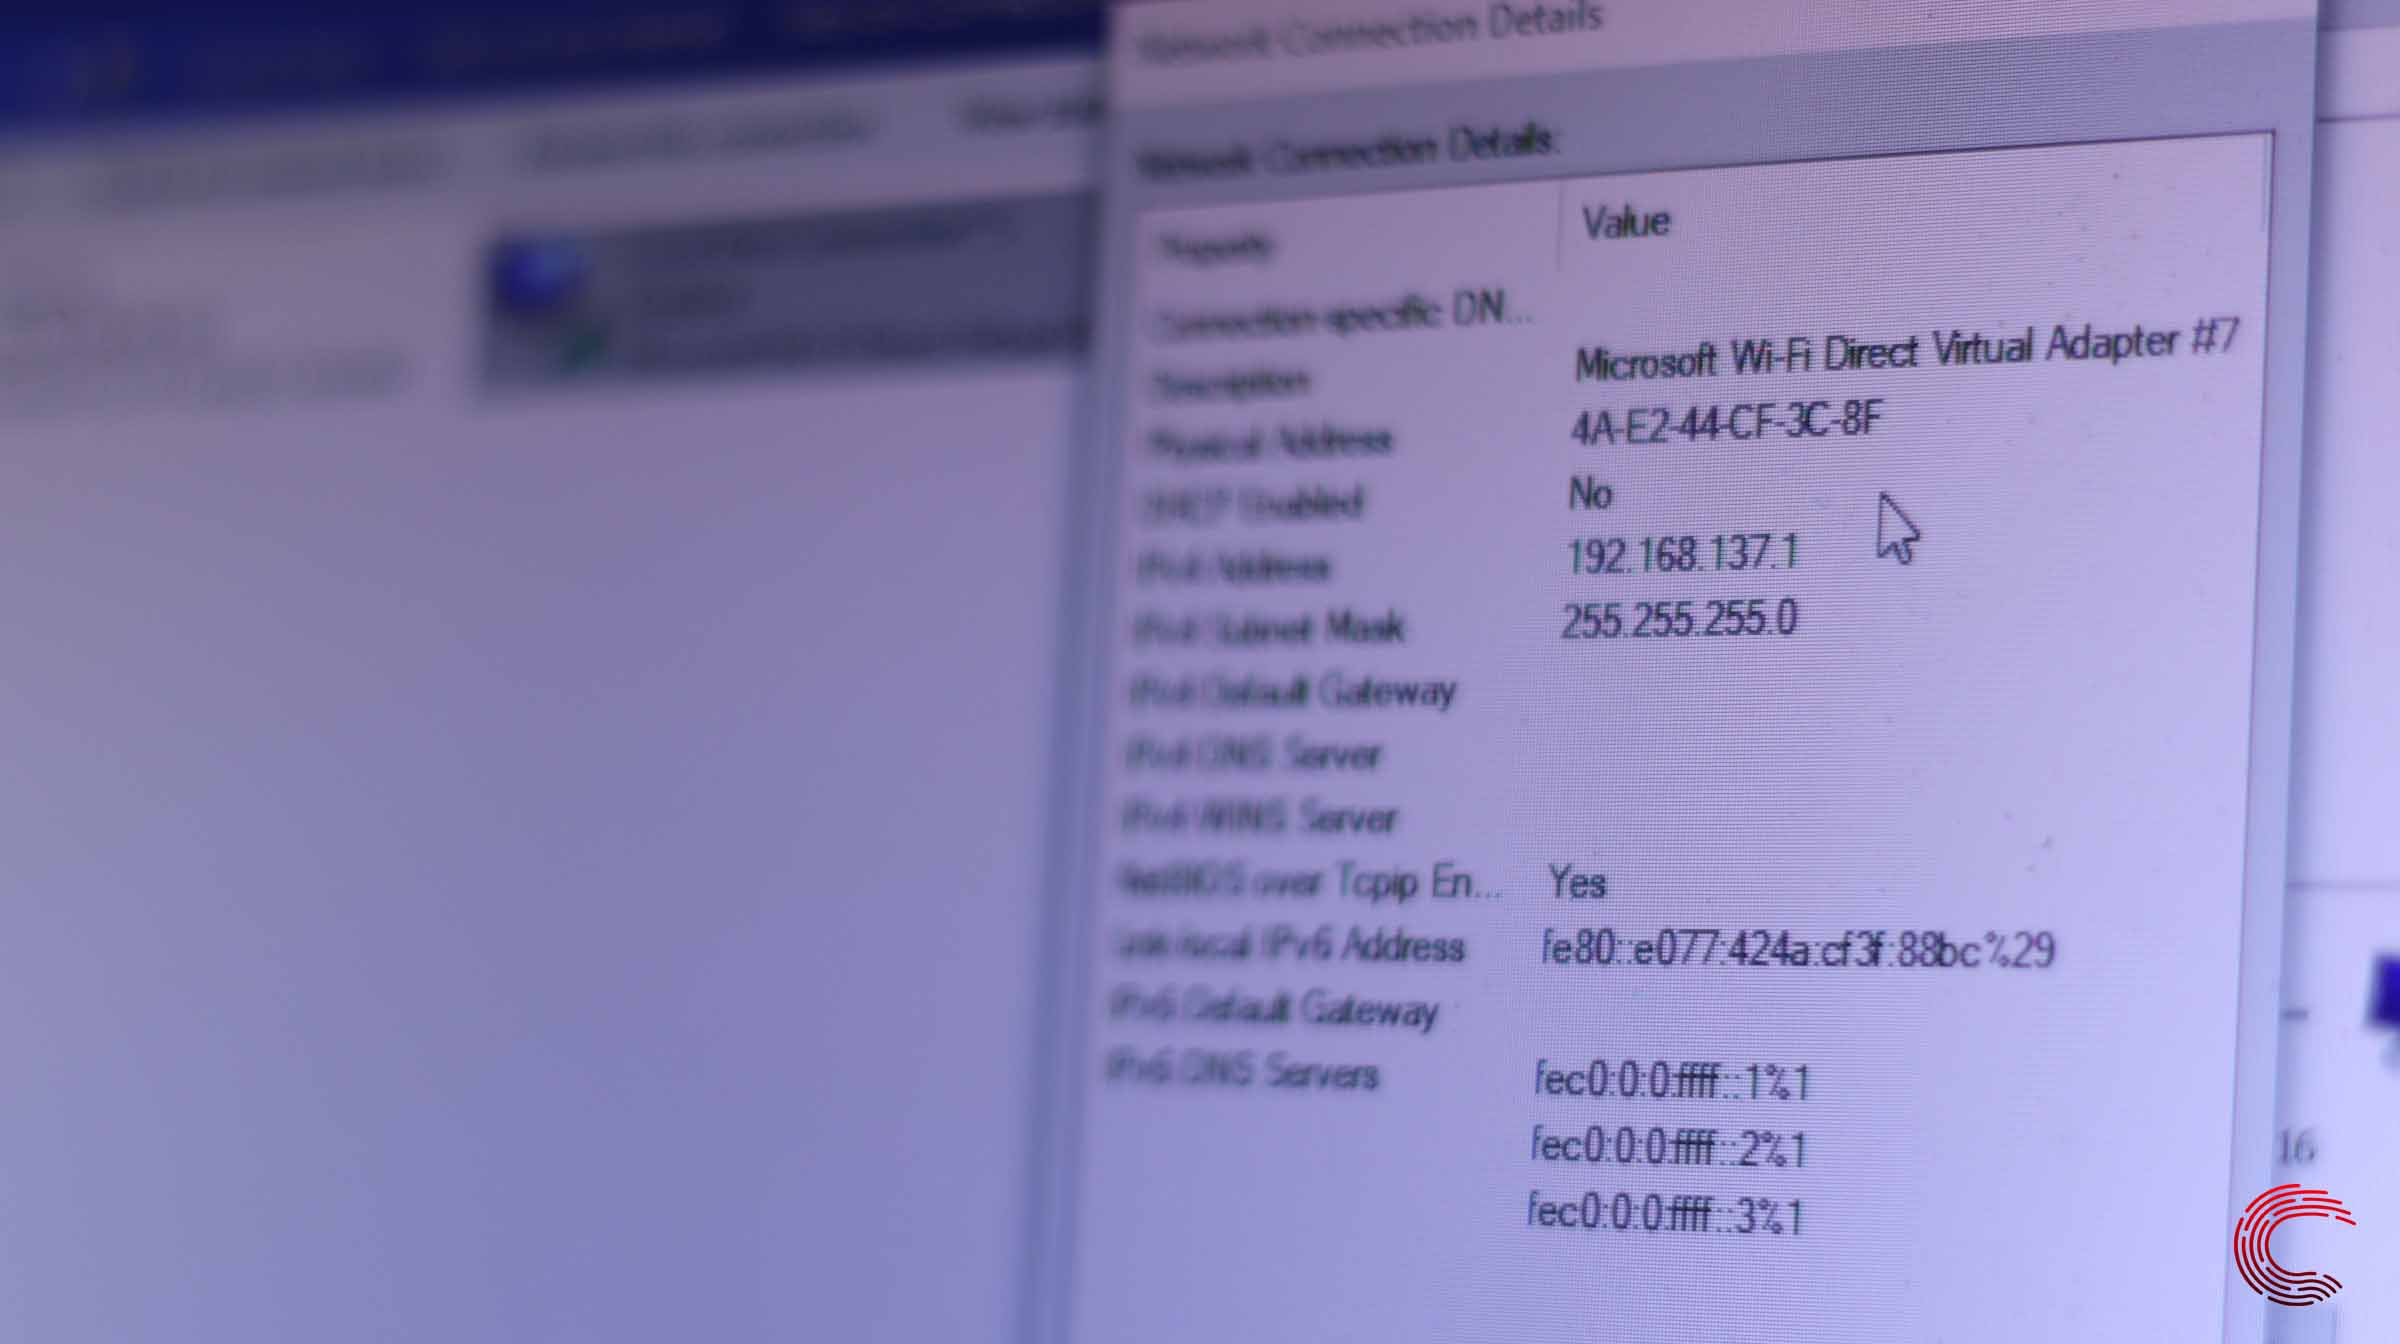 How to find MAC address on Windows? Via command prompt and settings